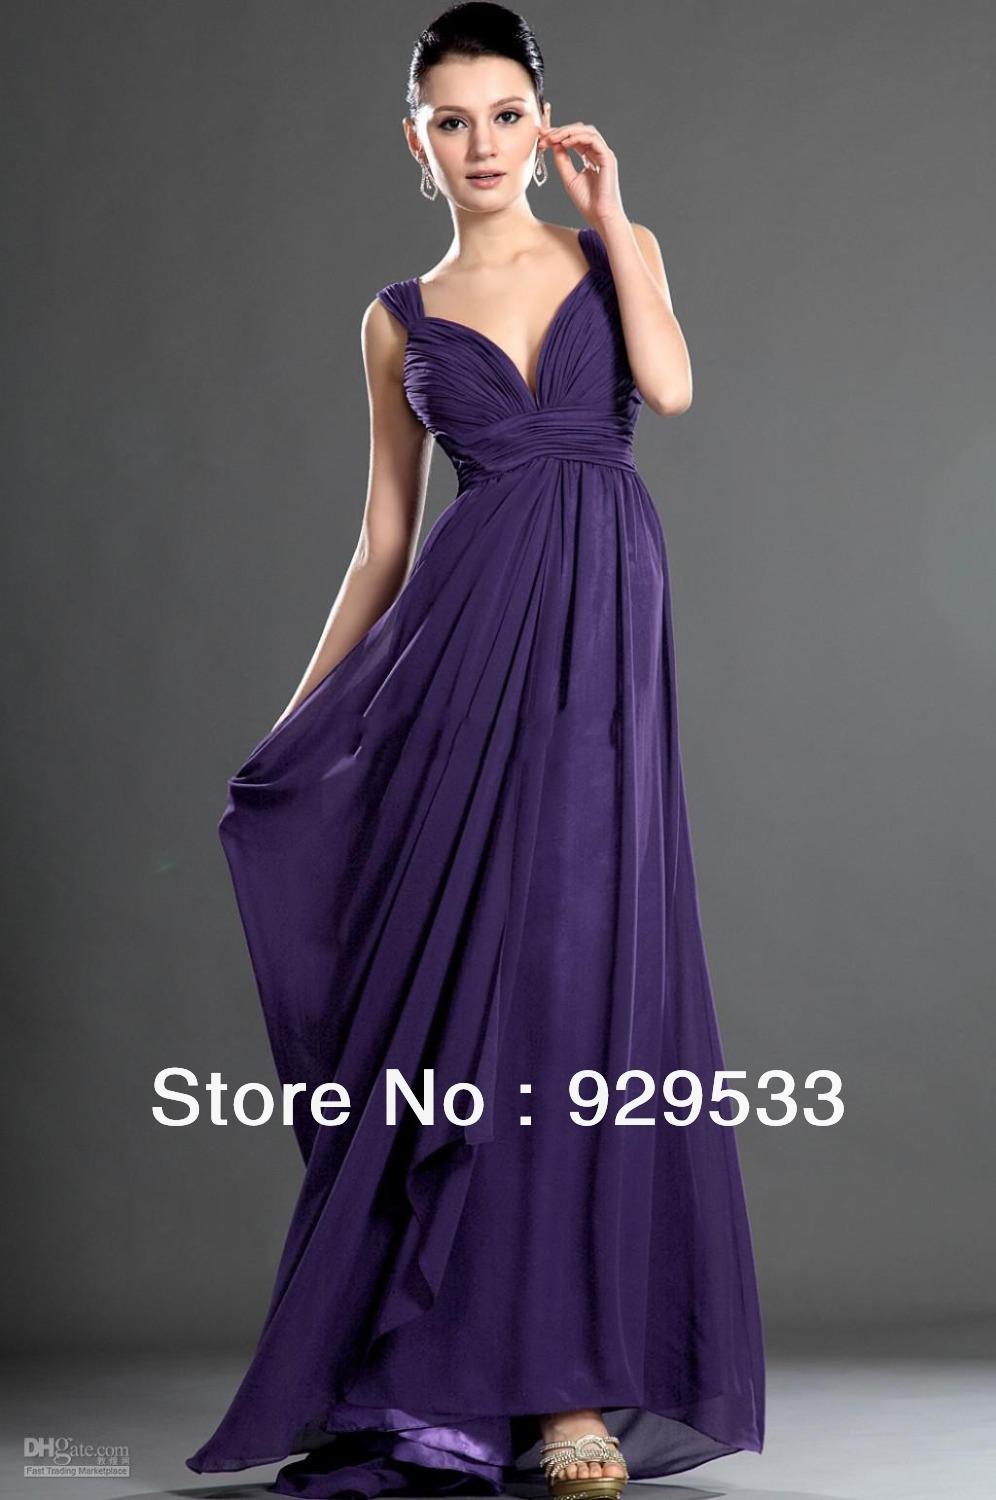 Purple bridesmaid dresses uk choice image braidsmaid dress bra women picture more detailed picture about royal blue royal blue bridesmaid dresses uk yellow bridesmaids ombrellifo Images